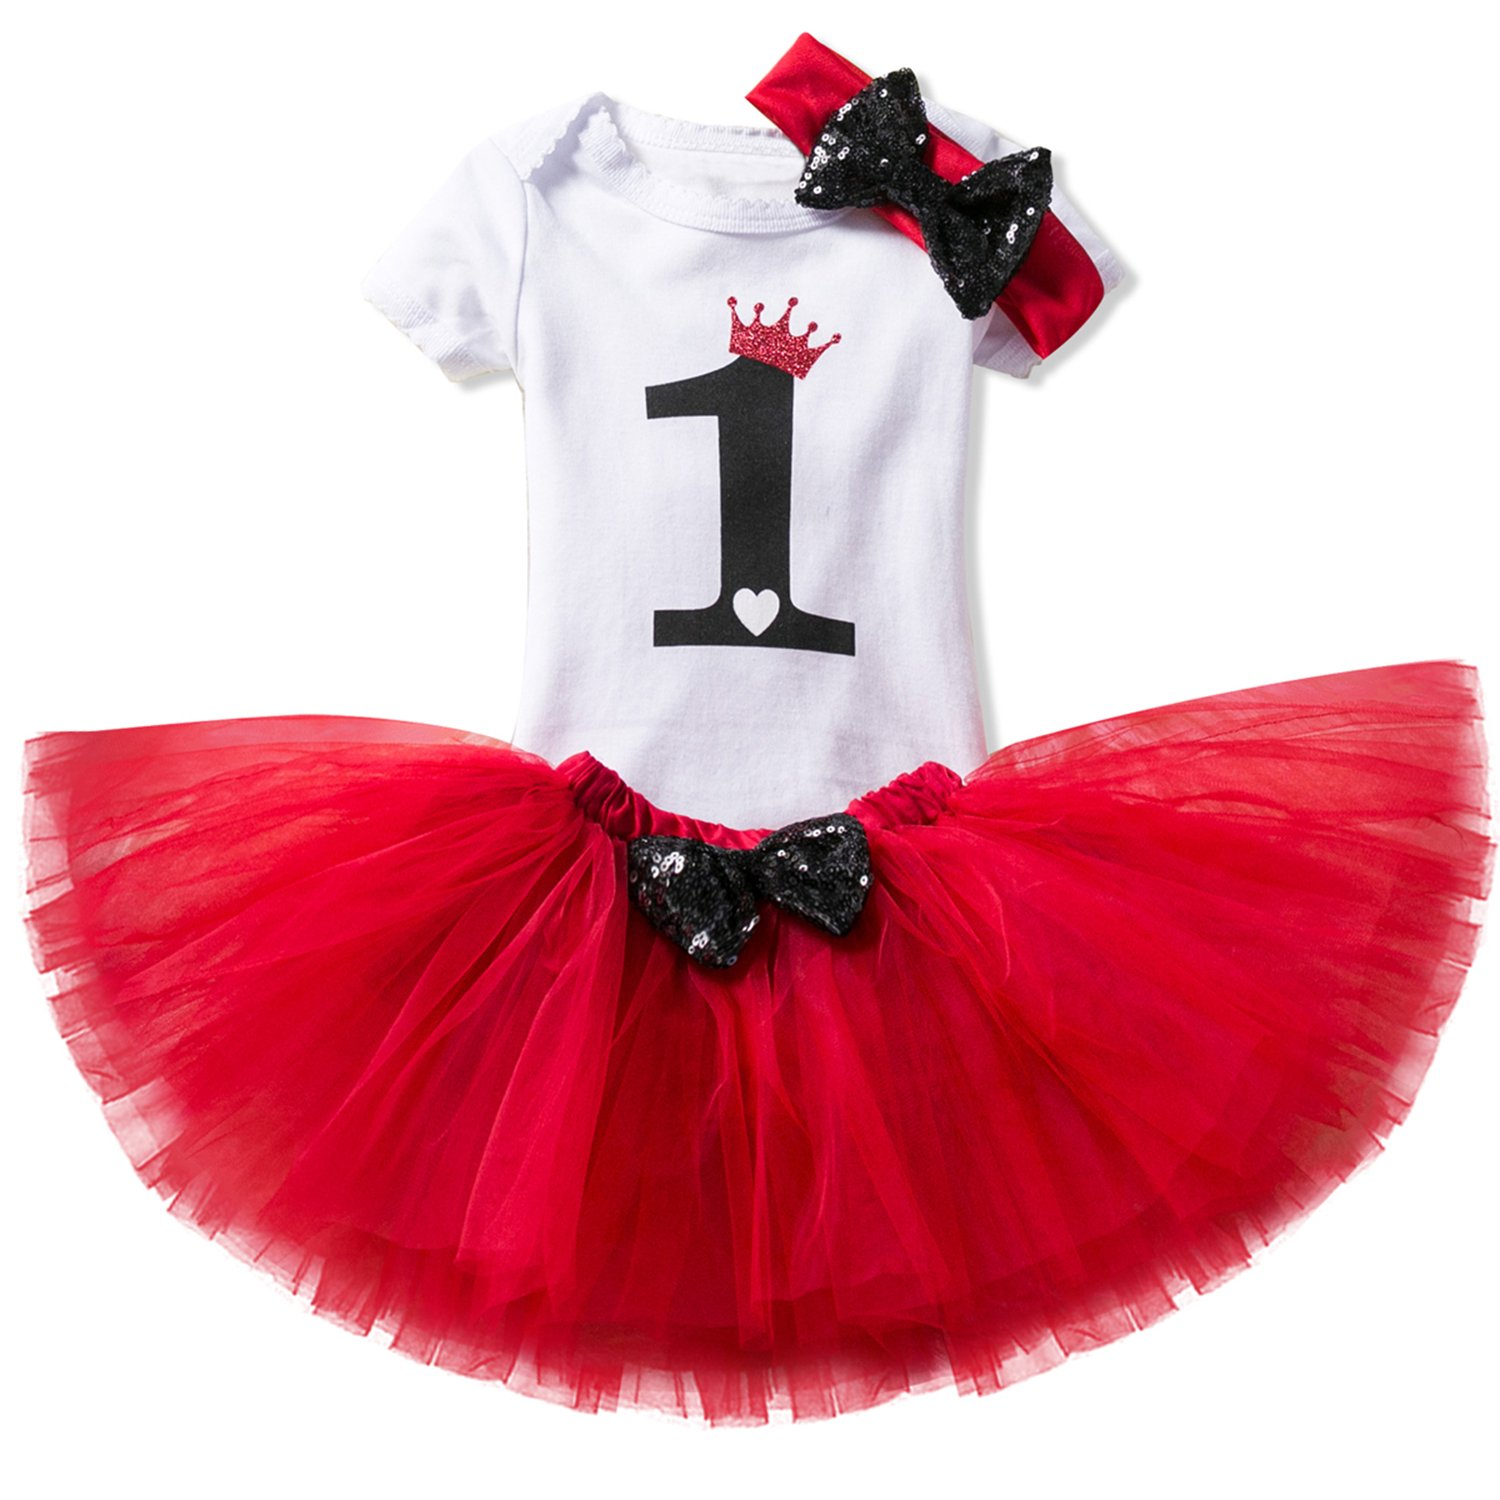 NNJXD Girl Shell Tutu 1st Birthday 3 Pcs Outfits Romper+ Dress + Black Headband Size (1) 1 Year Red